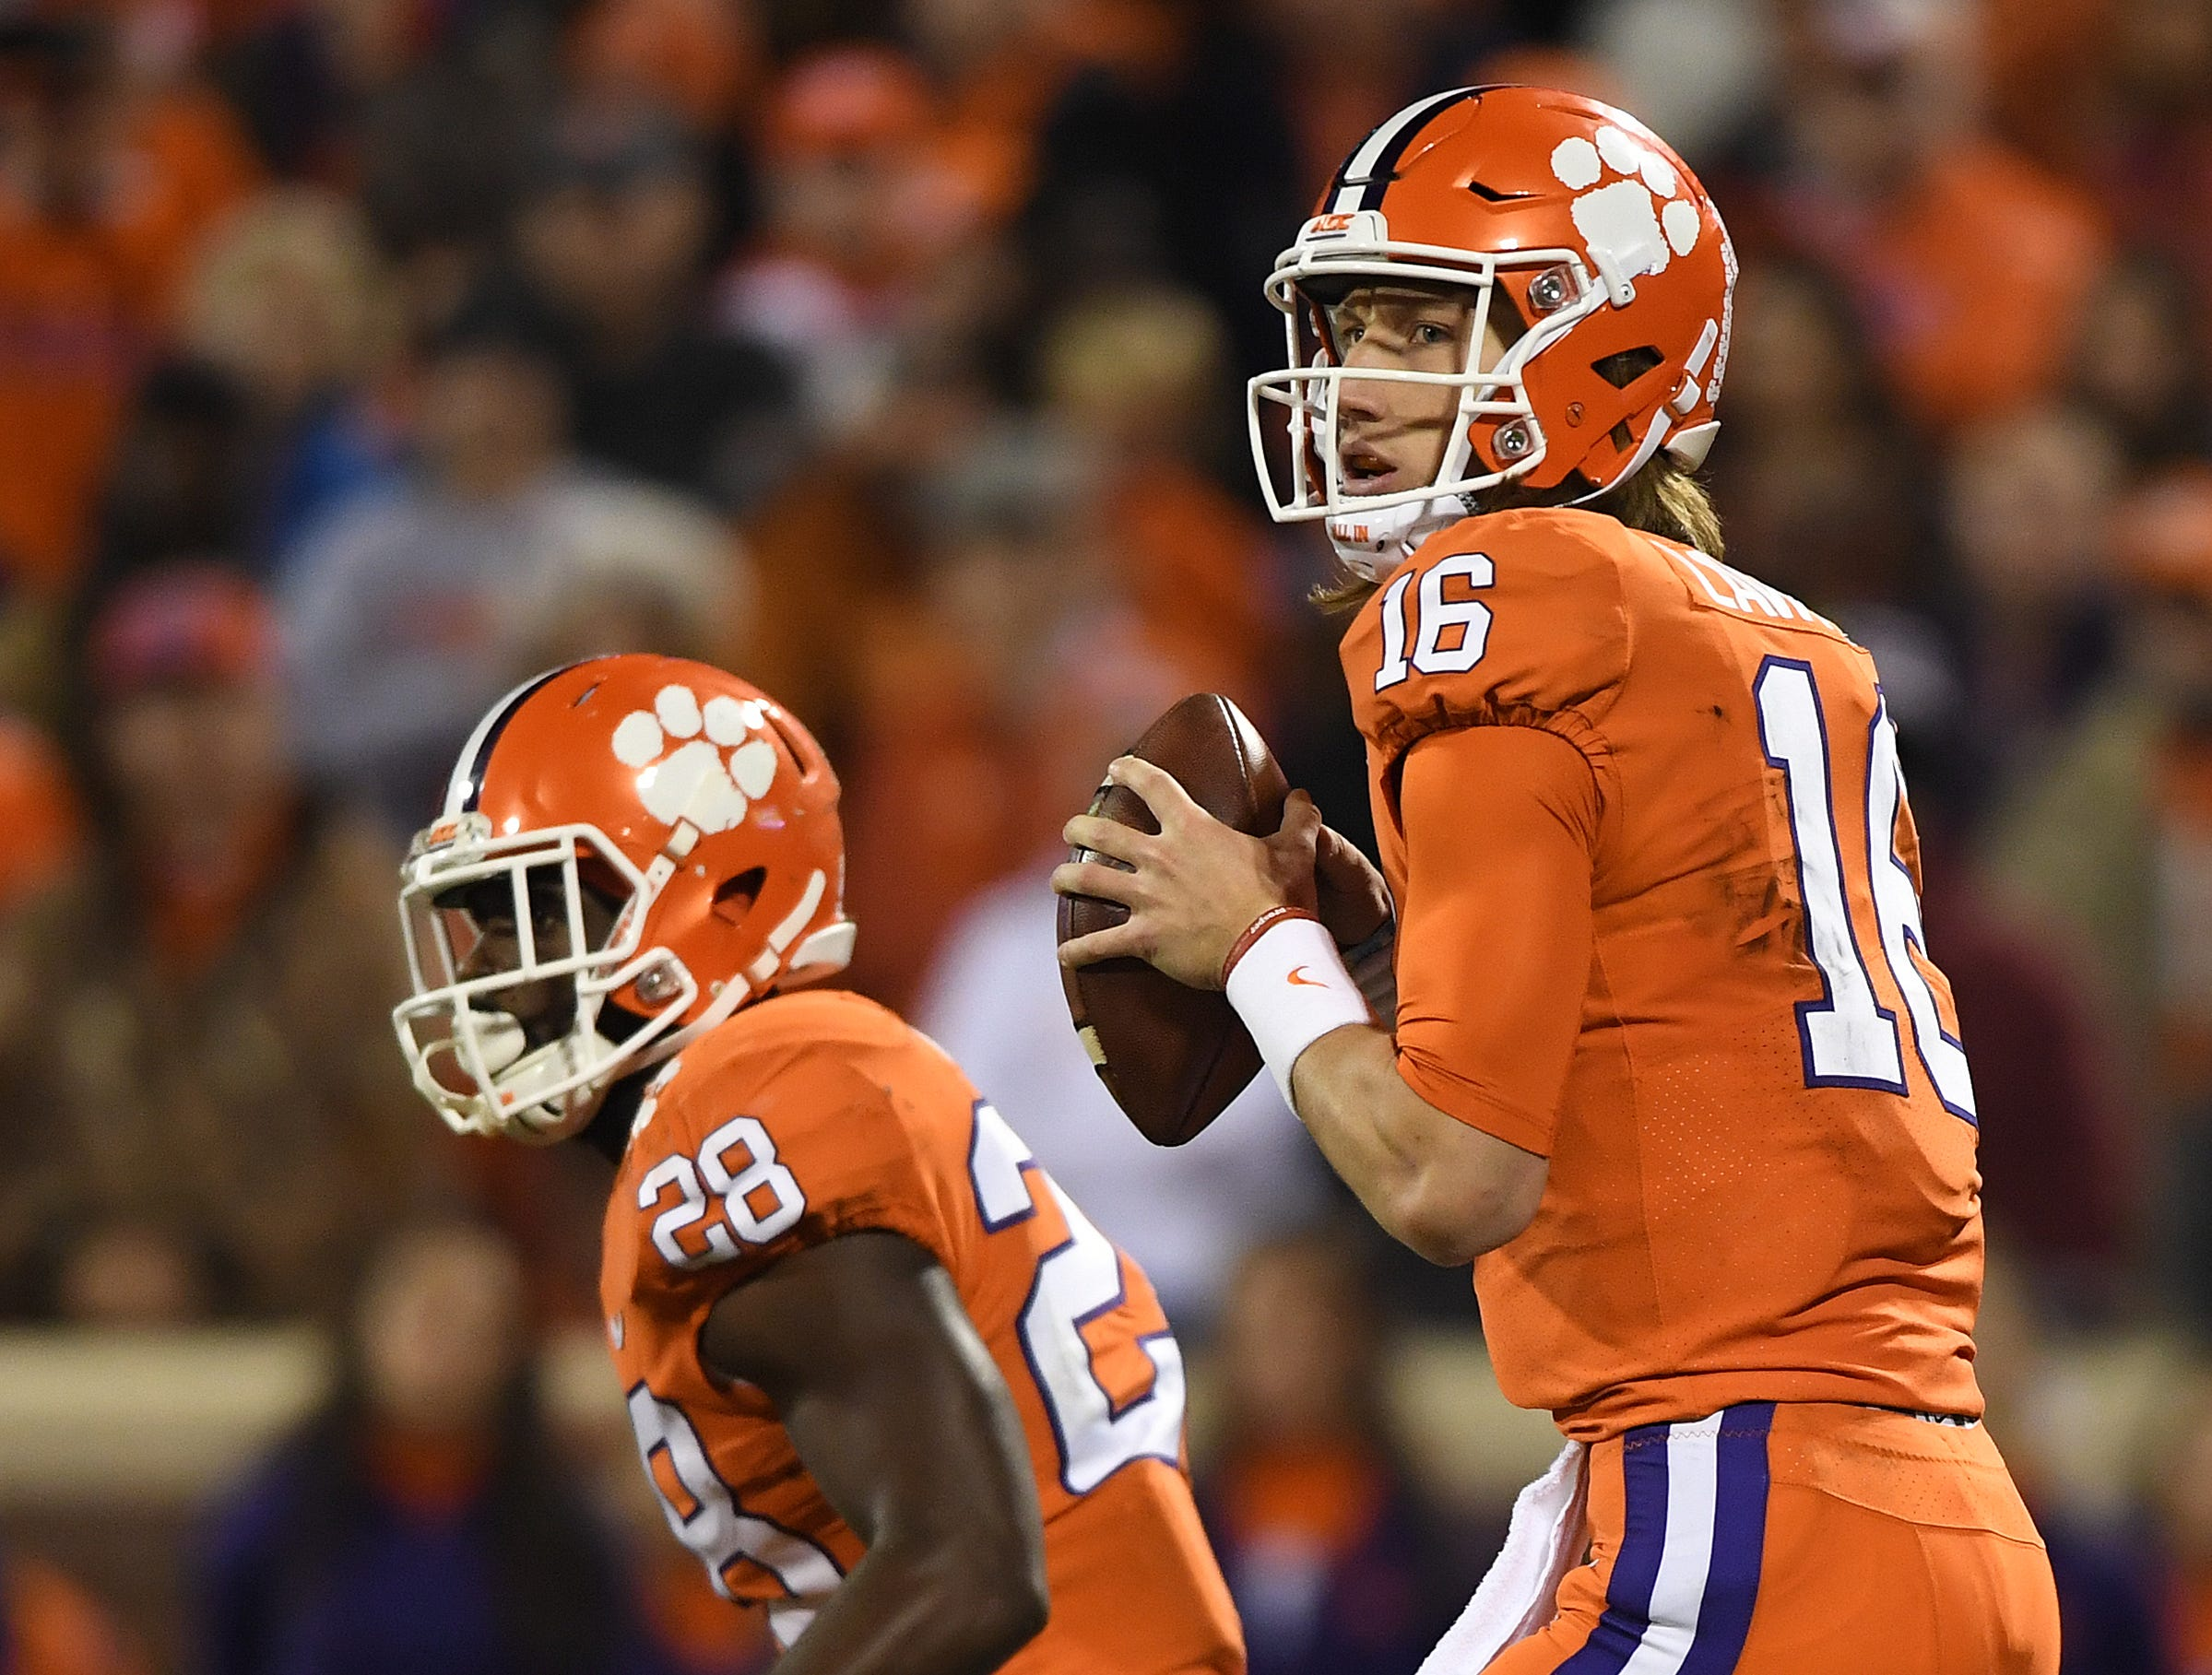 Clemson quarterback Trevor Lawrence (16) looks to pass against South Carolina during the 2nd quarter Saturday, November 24, 2018 at Clemson's Memorial Stadium.